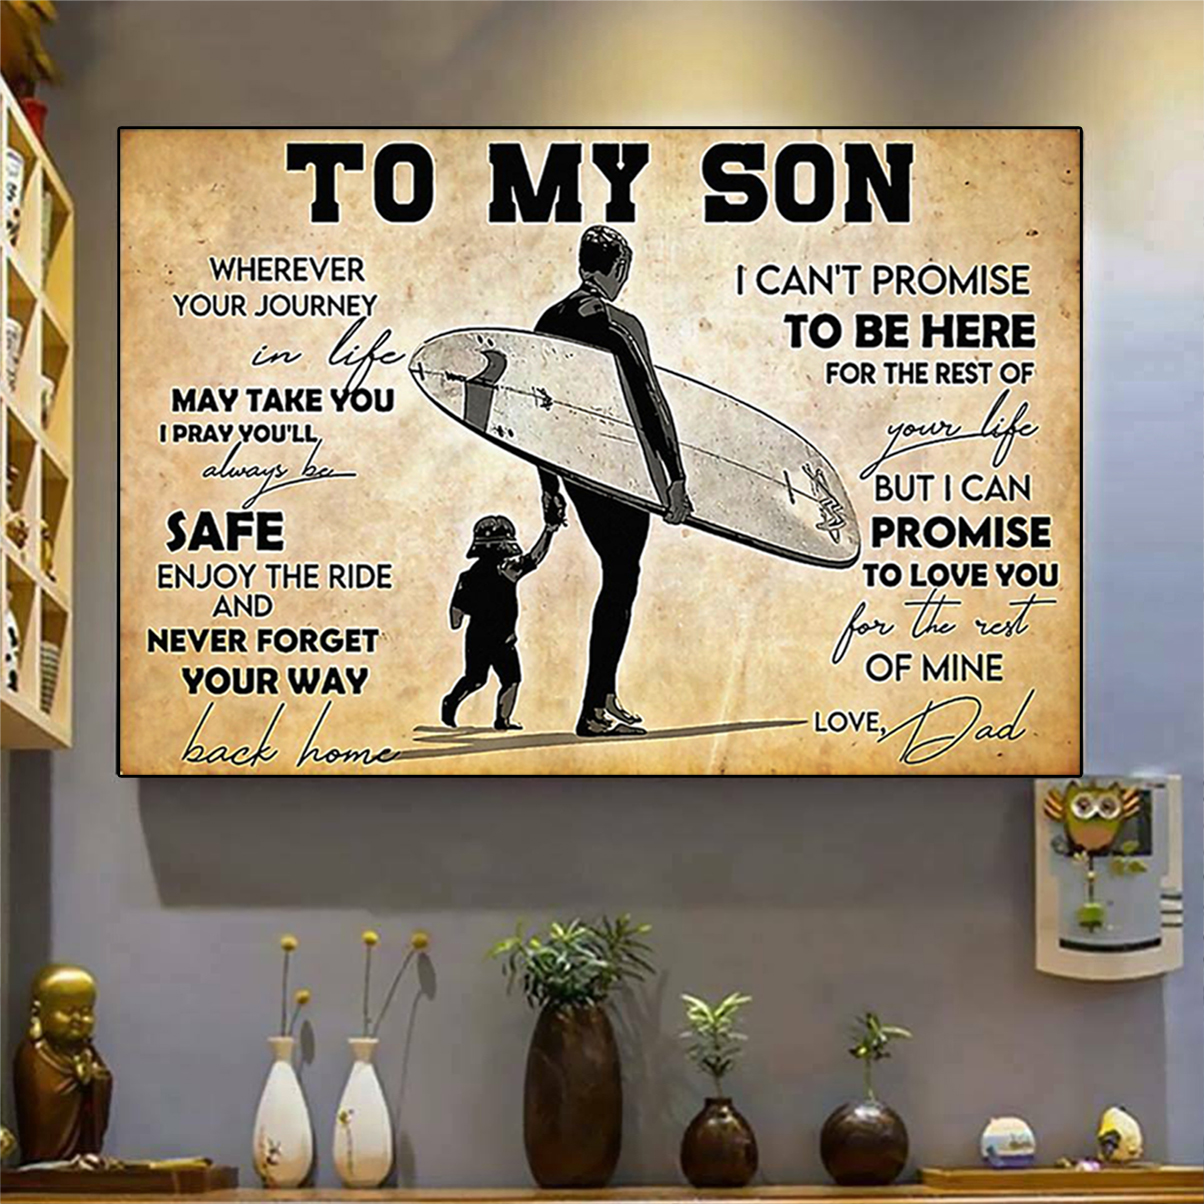 Surfing to my son dad poster A3